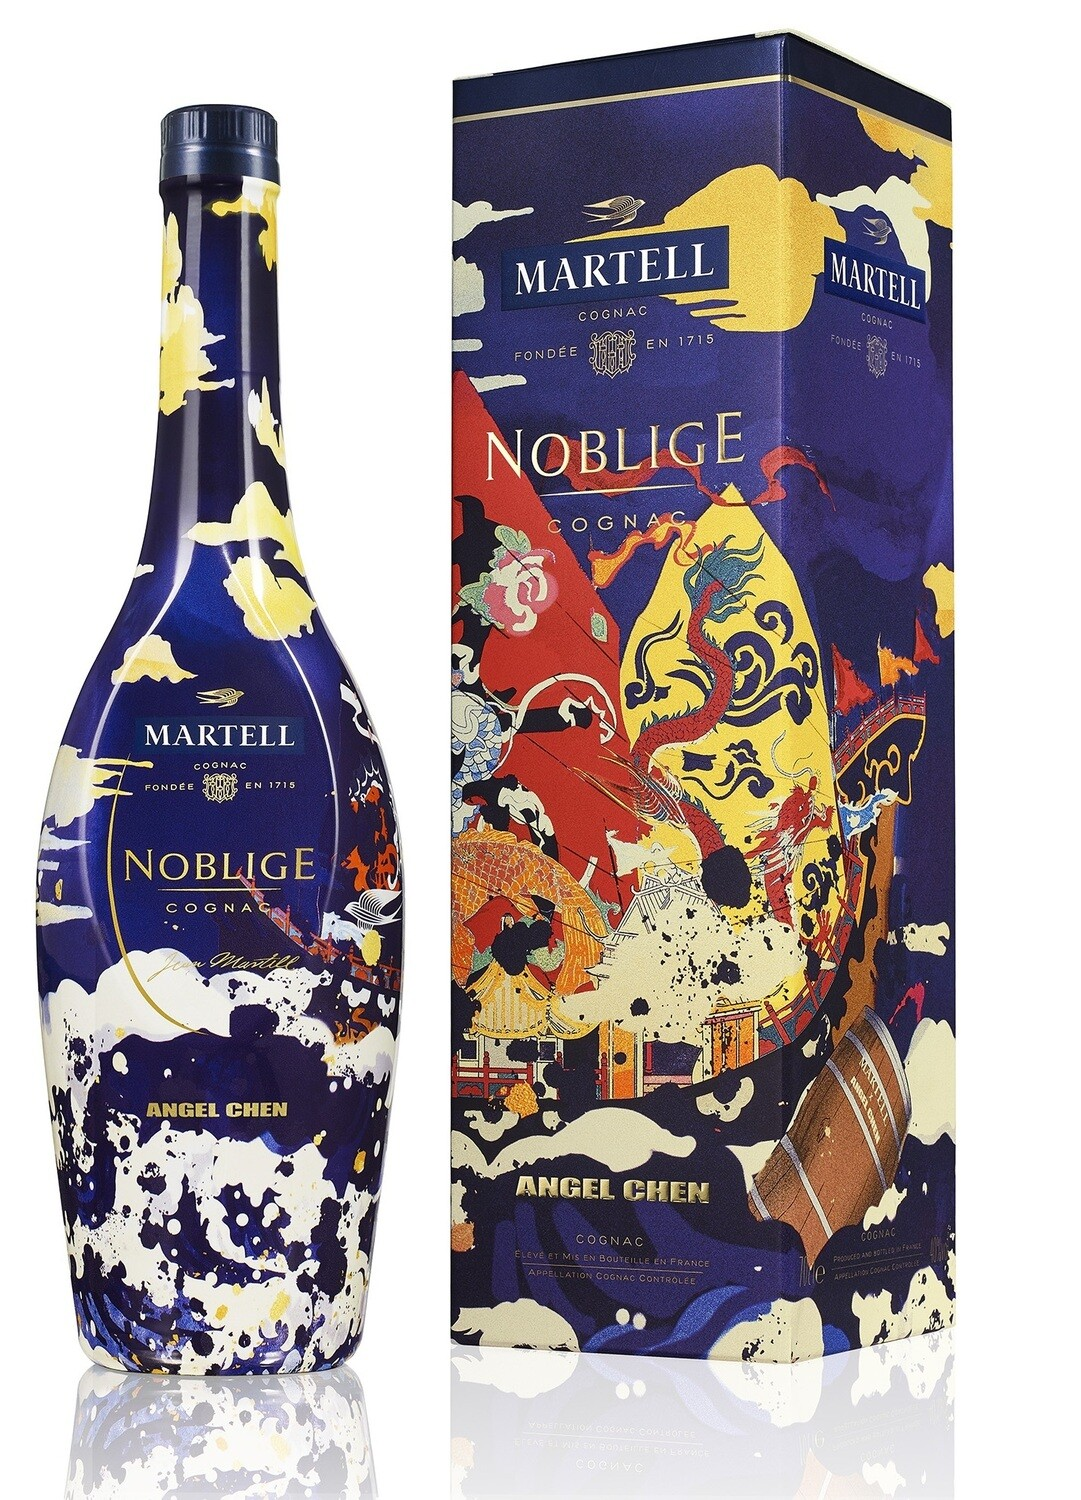 Martell 'Noblige' Cognac  (Limited Edition CNY Gift Pack by Angel Chen) - Pre-Order, delivery in early December